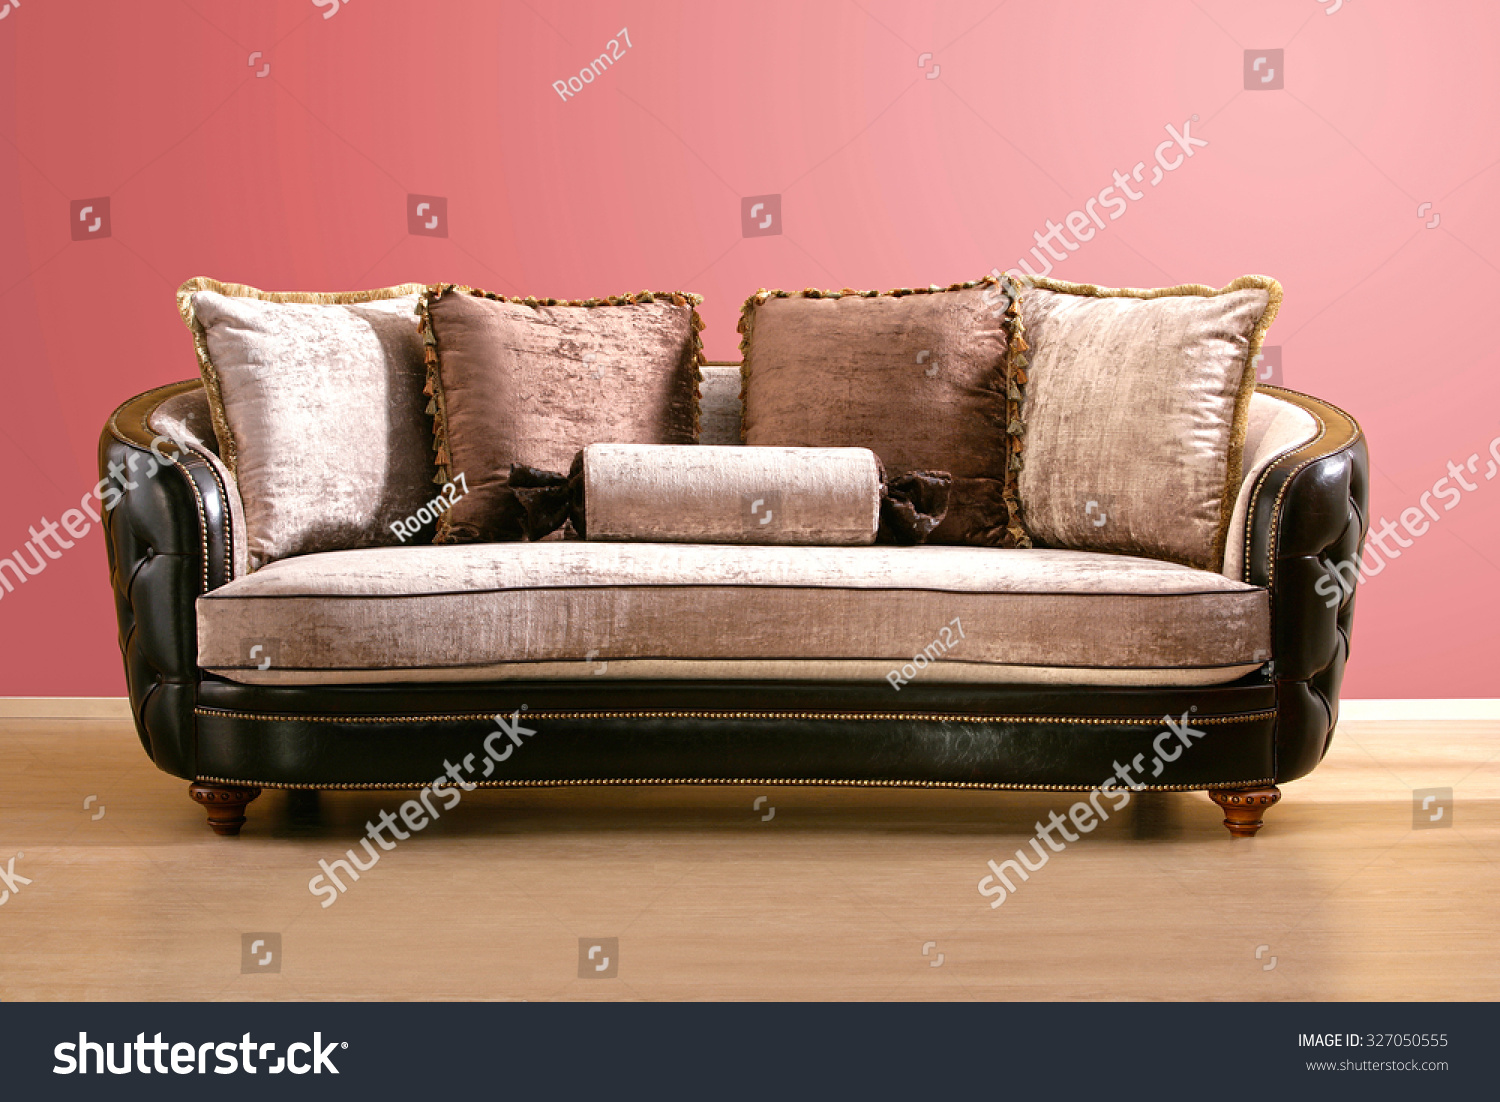 Vintage Couch Vintage Couch Made Brown Leather Pink Stock Photo Edit Now